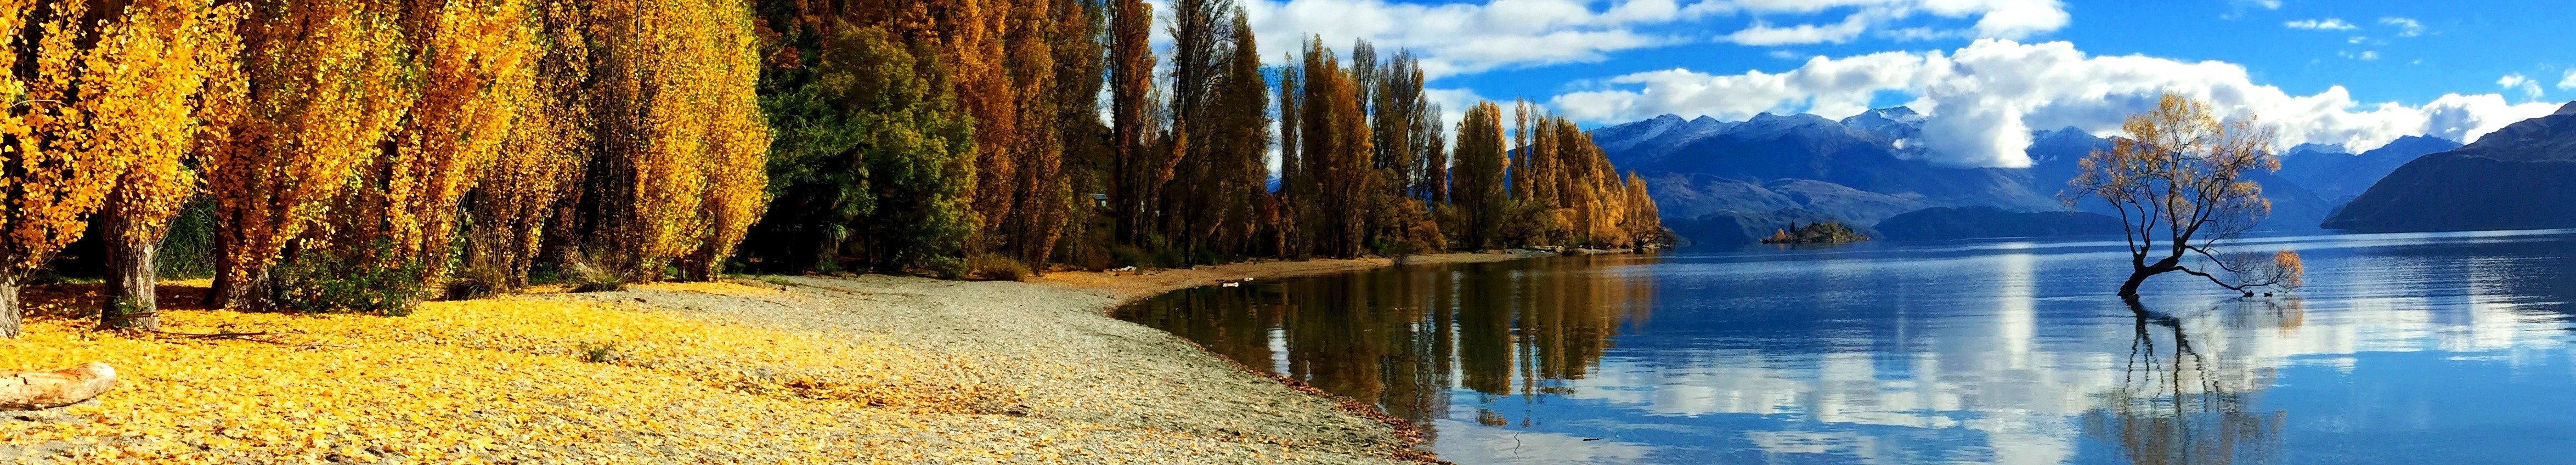 rsz-autumn-trees-colour-that-wanaka-tree-april-2015.jpg